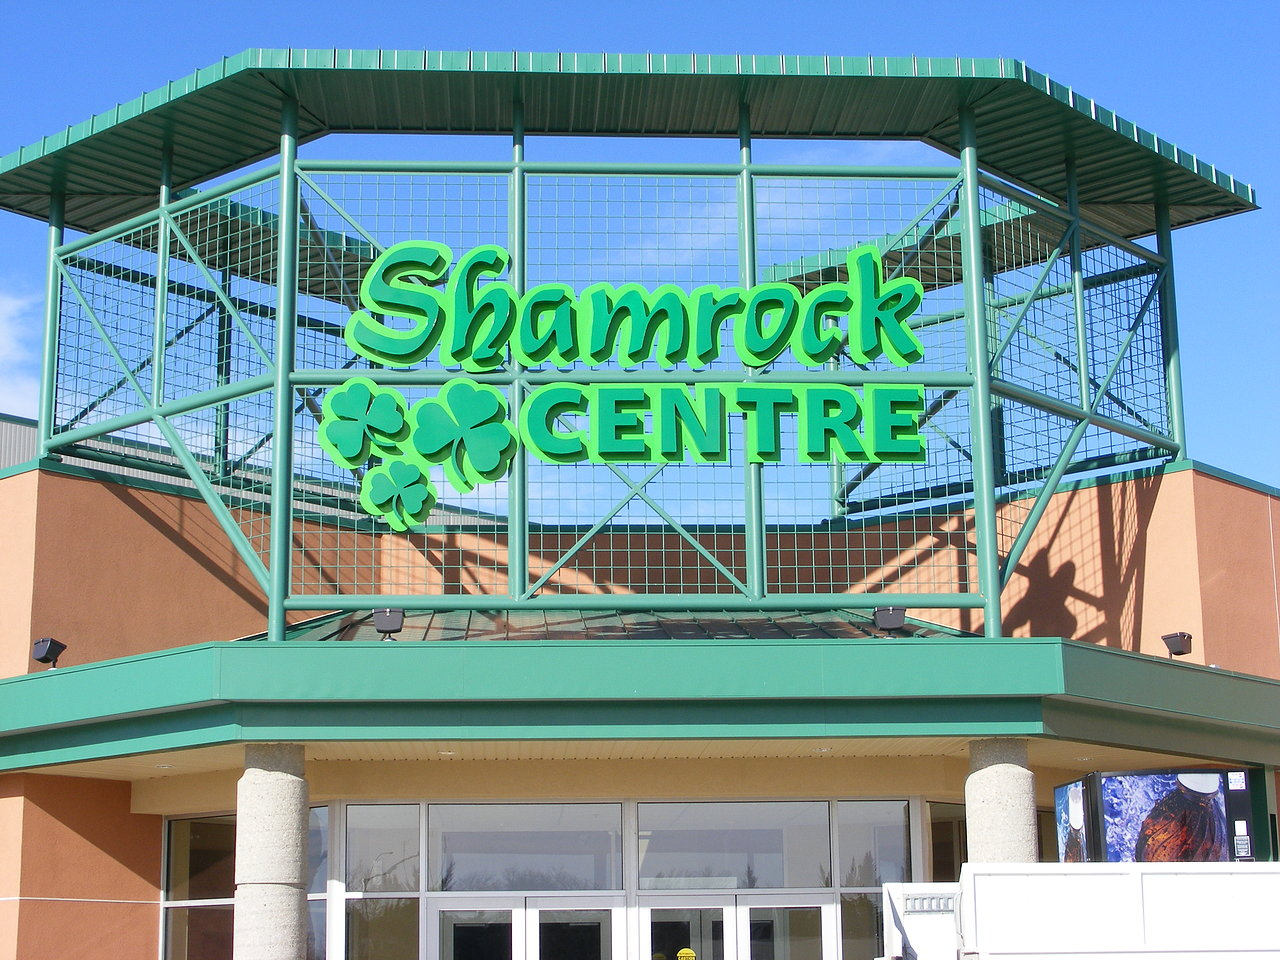 Shamrock Centre Killarney